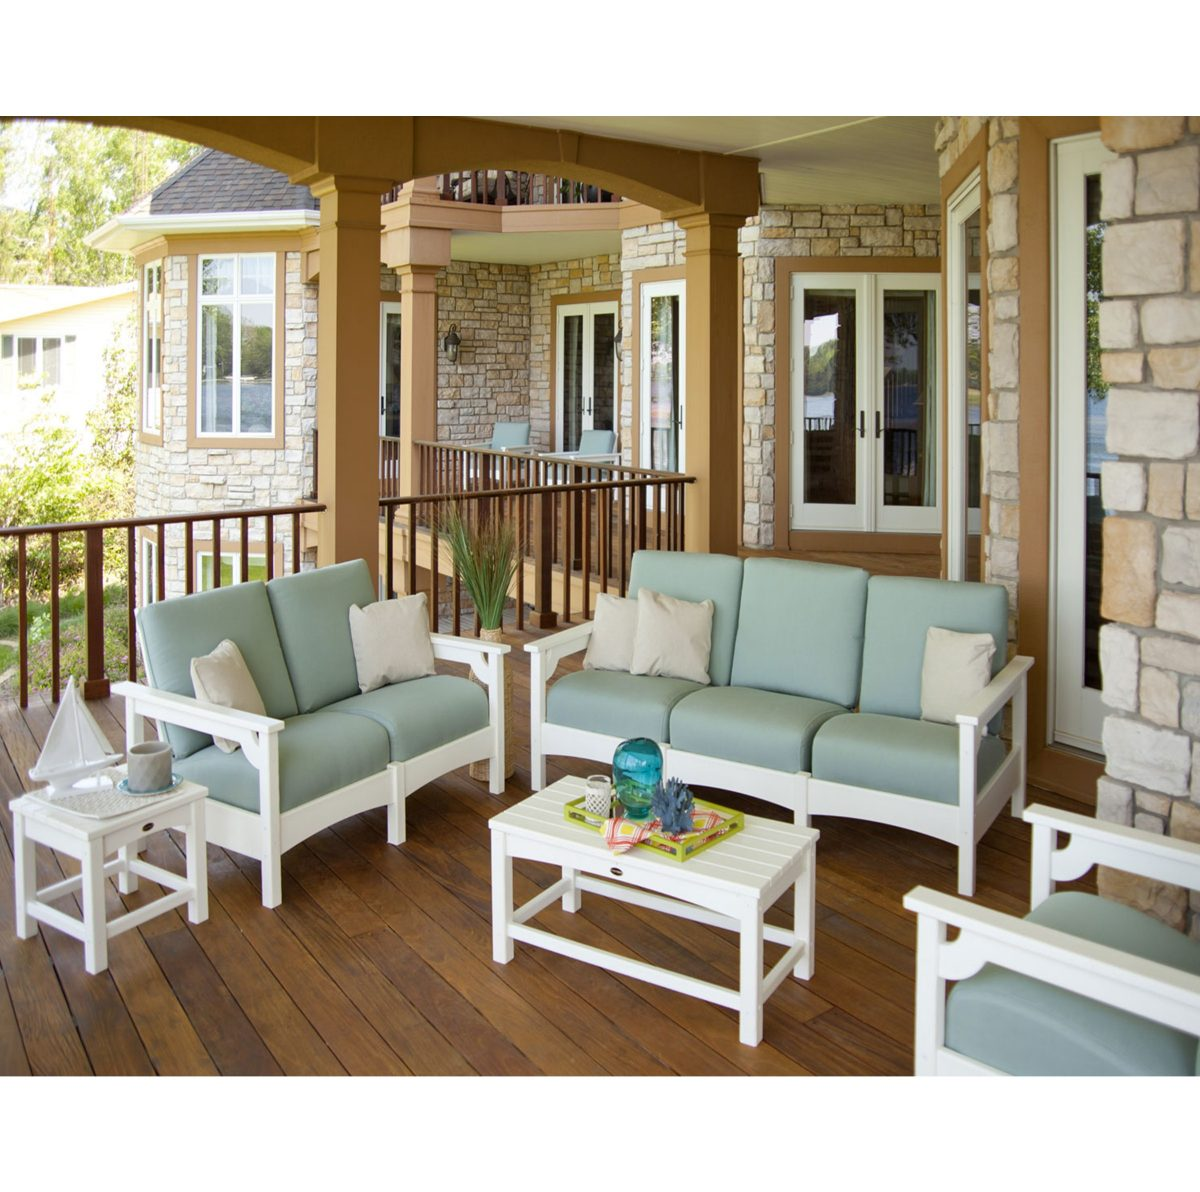 The Best Outdoor Furniture That is Durable and Low Maintenance 1